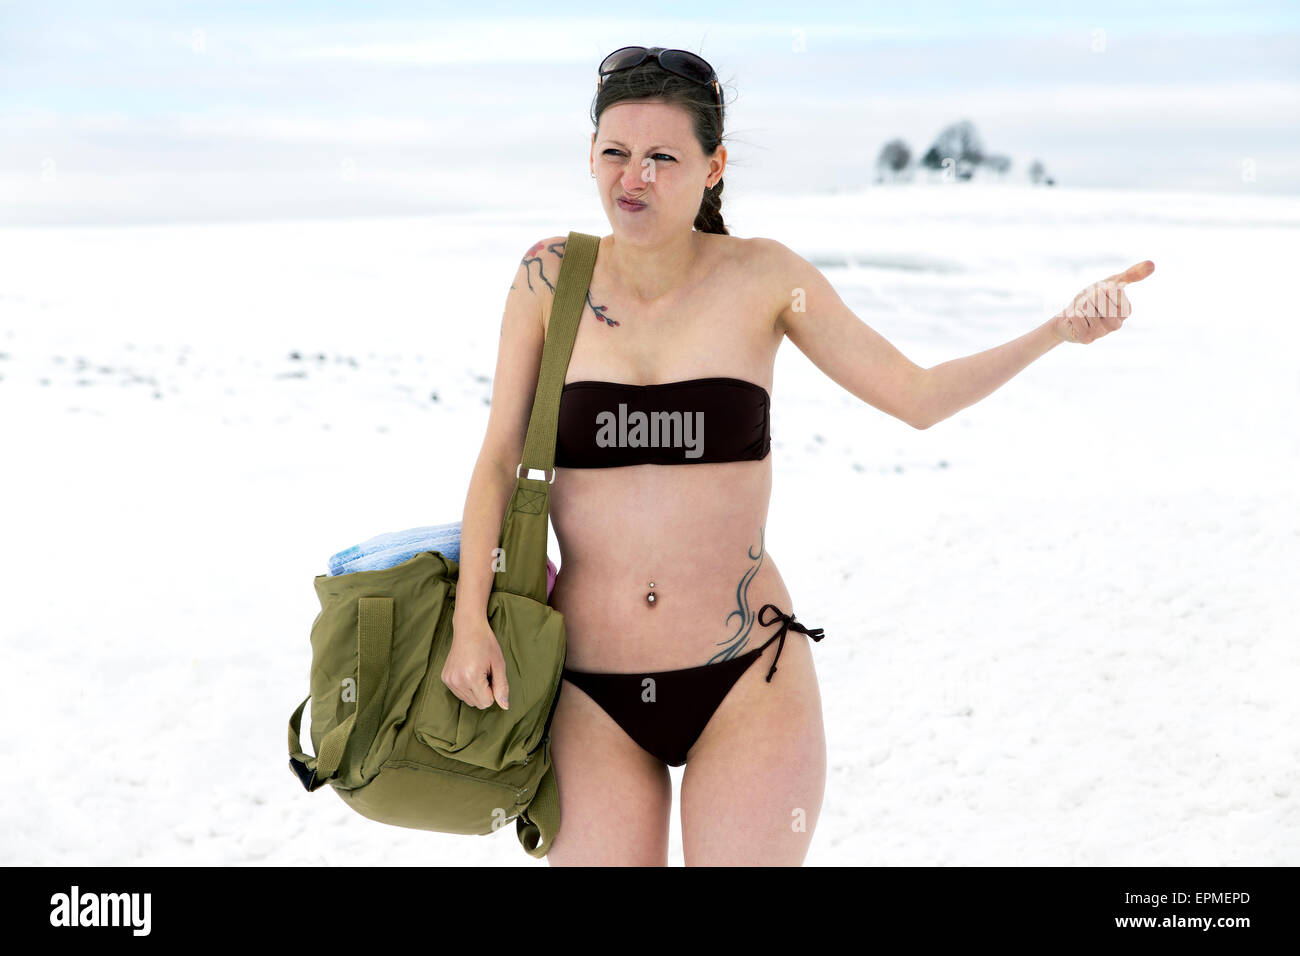 bikini in snow Stock Photo - Woman in bikini in snow hitchhiking